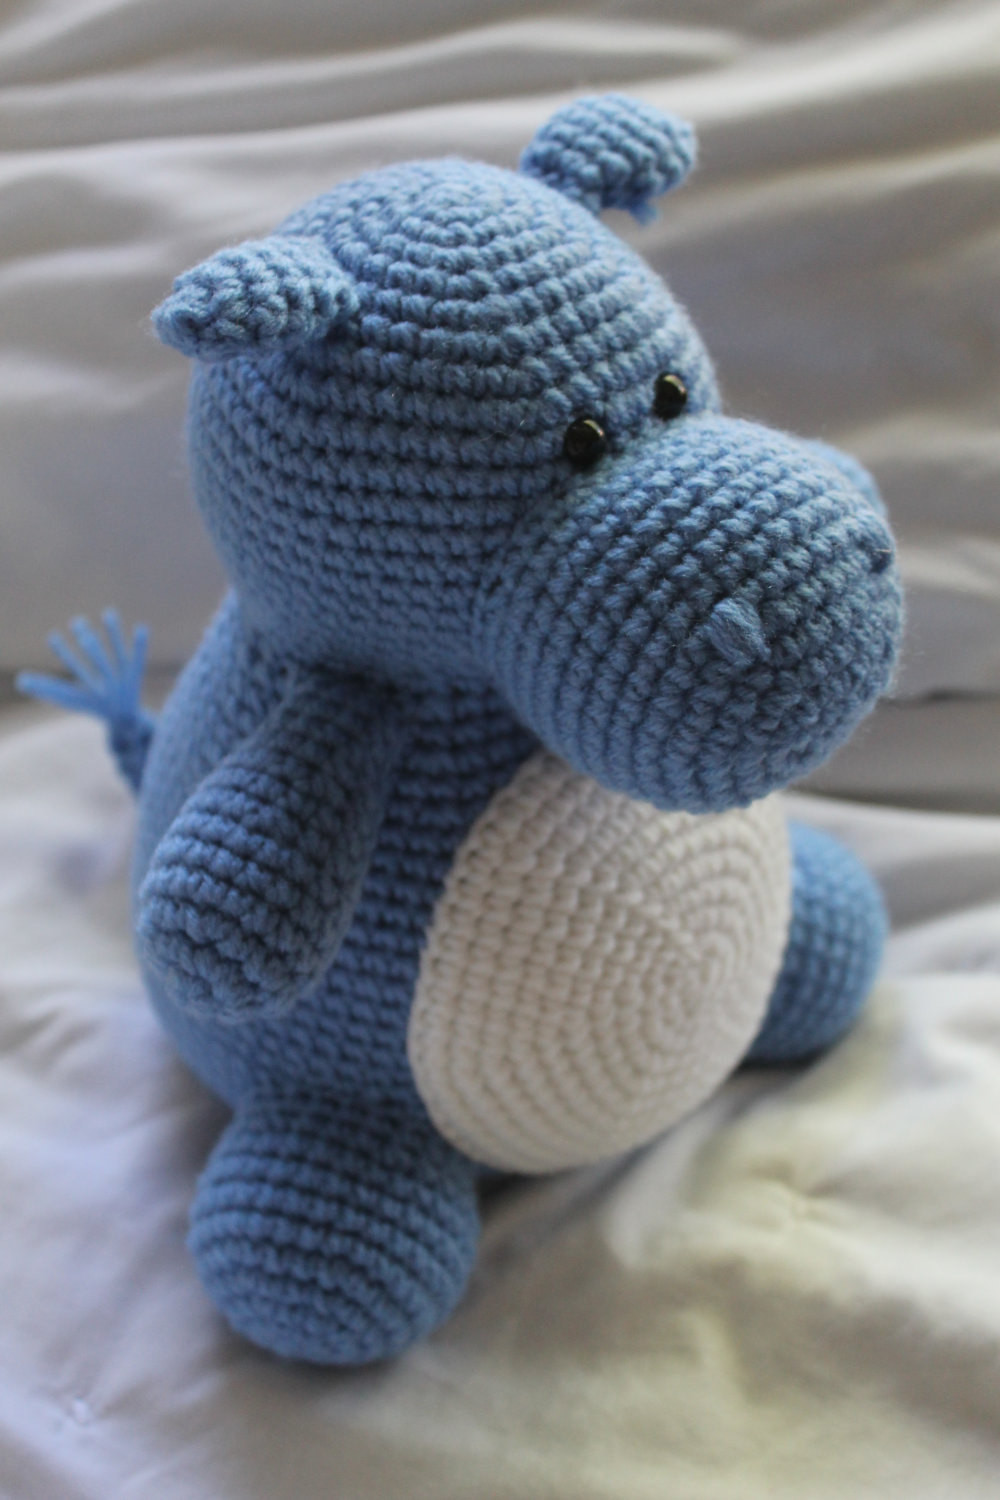 Crochet Hippo Pattern Free Luxury Hilda the Hippo Crochet Amigurumi Pattern Only Pdf Of Awesome 40 Pics Crochet Hippo Pattern Free